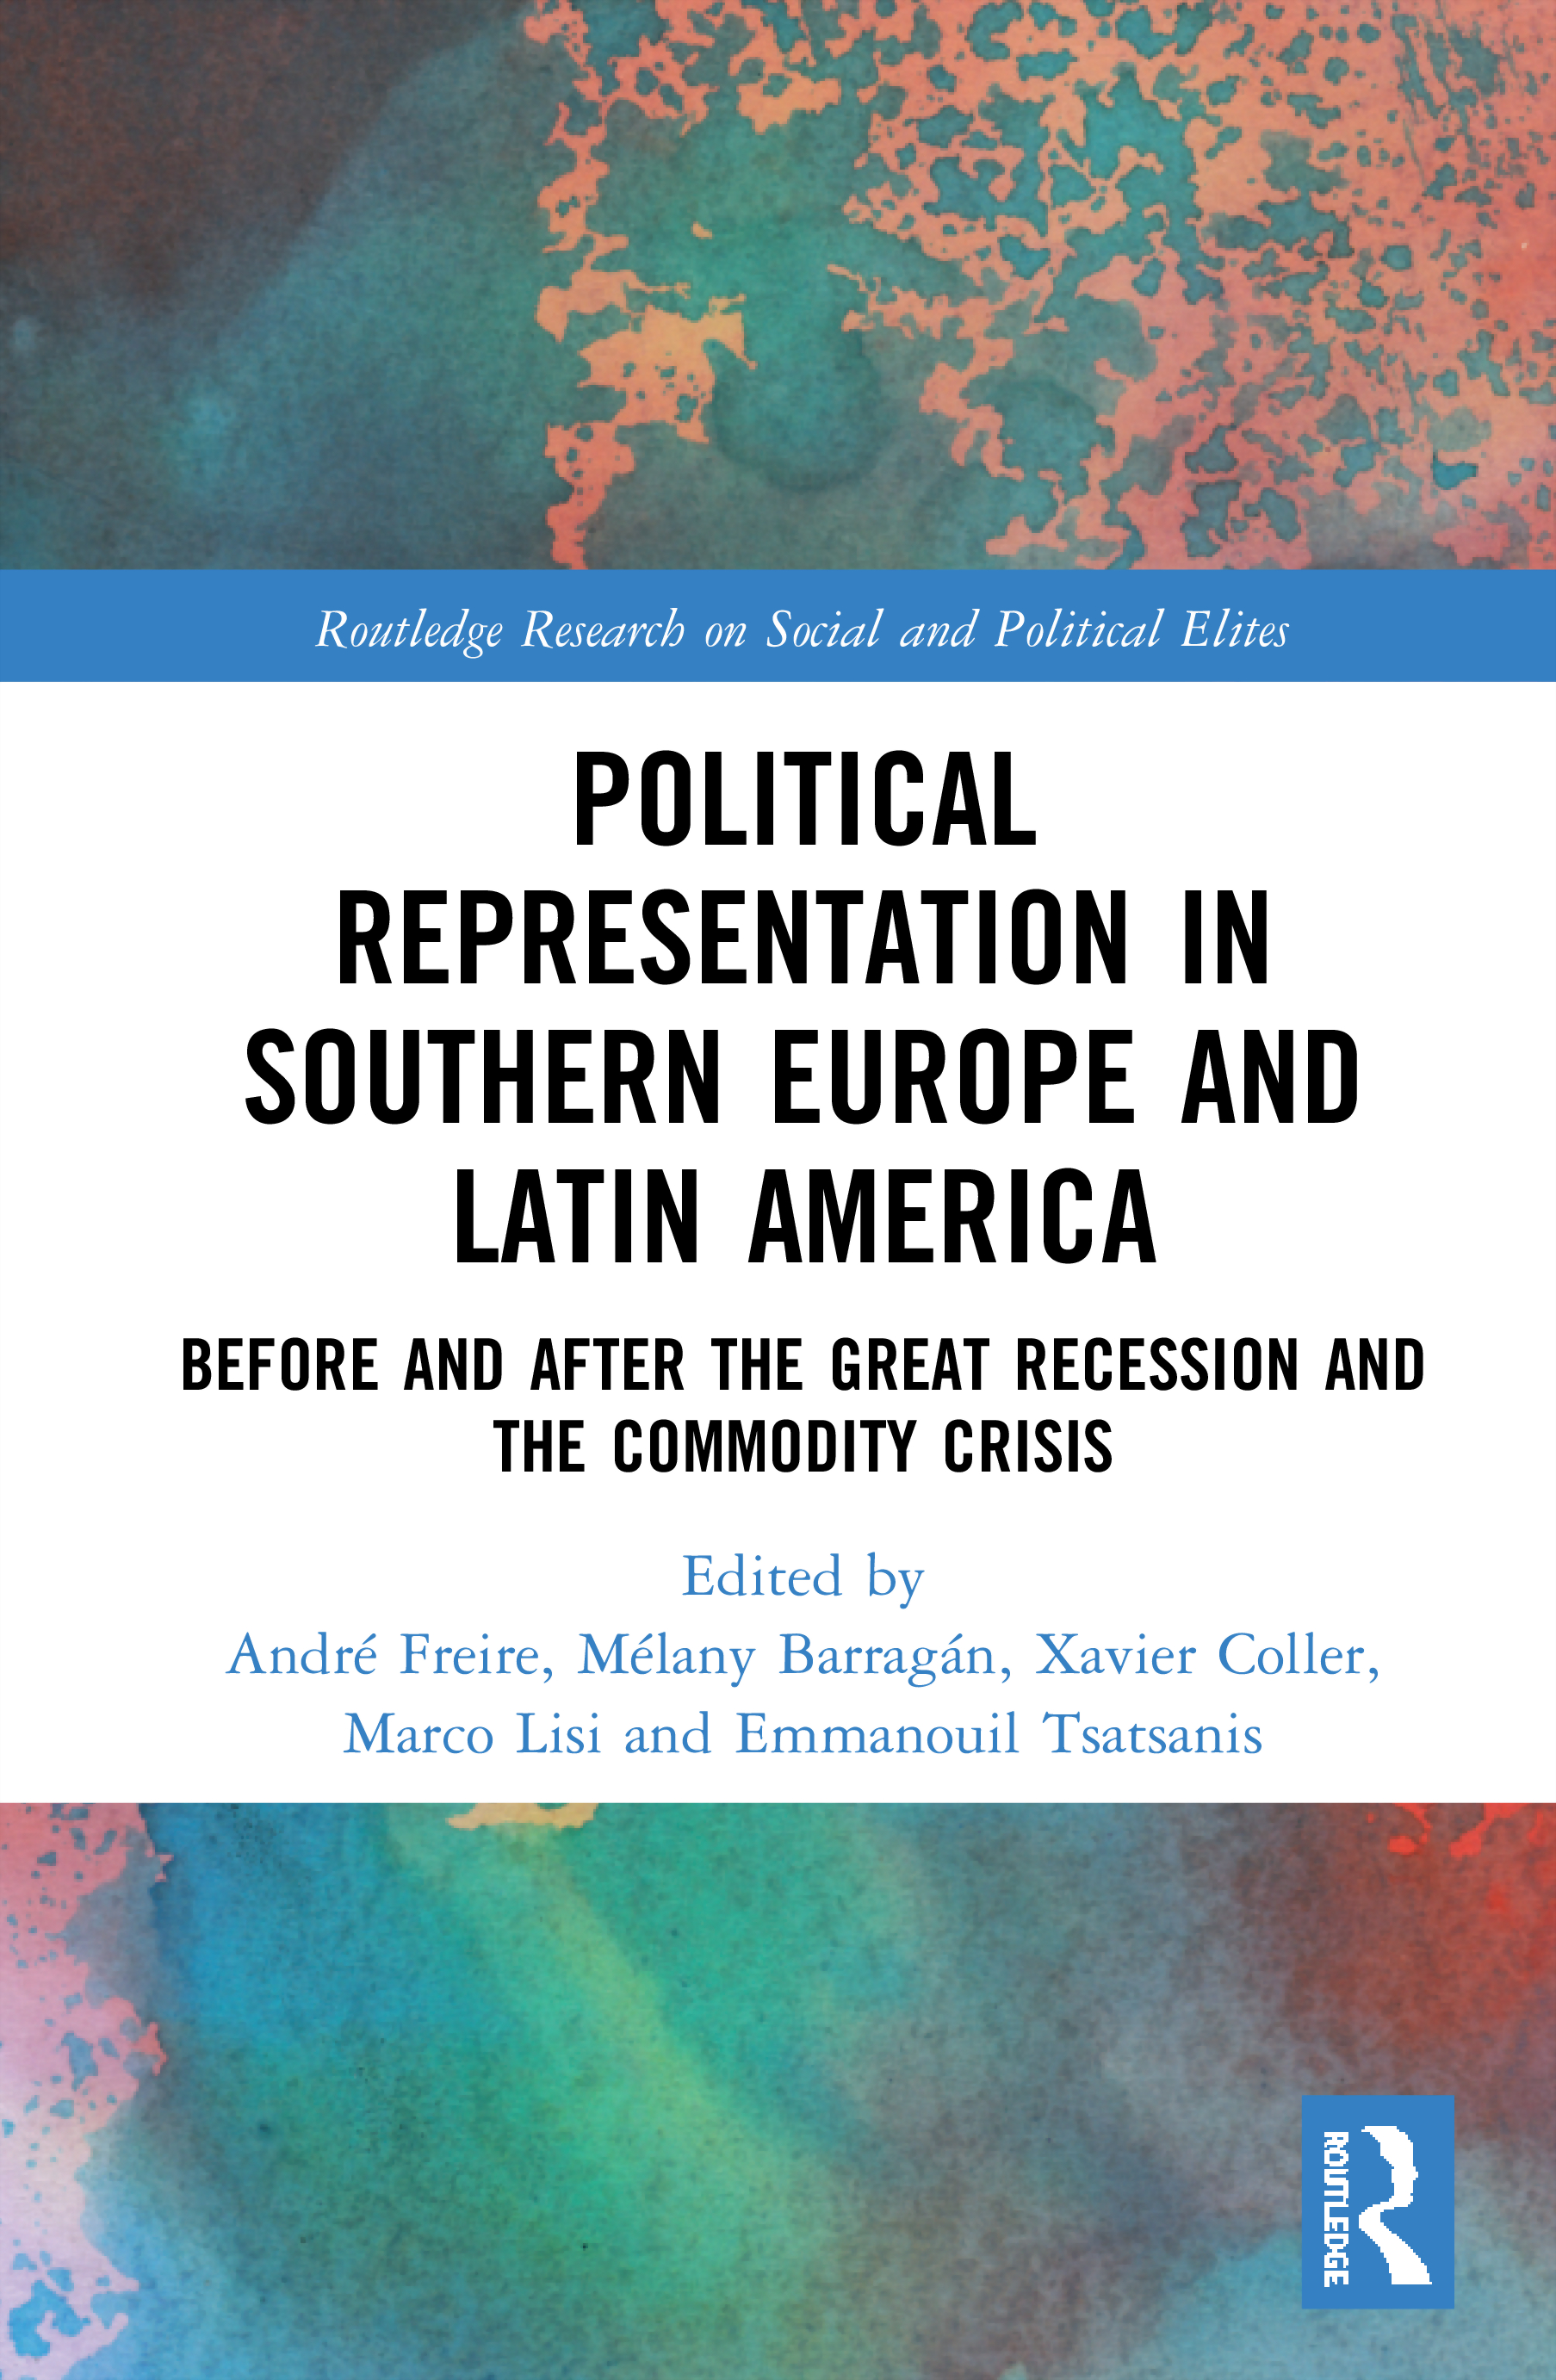 Political Representation in Southern Europe and Latin America: Crisis or Continuing Transformation following the Great Recession? book cover